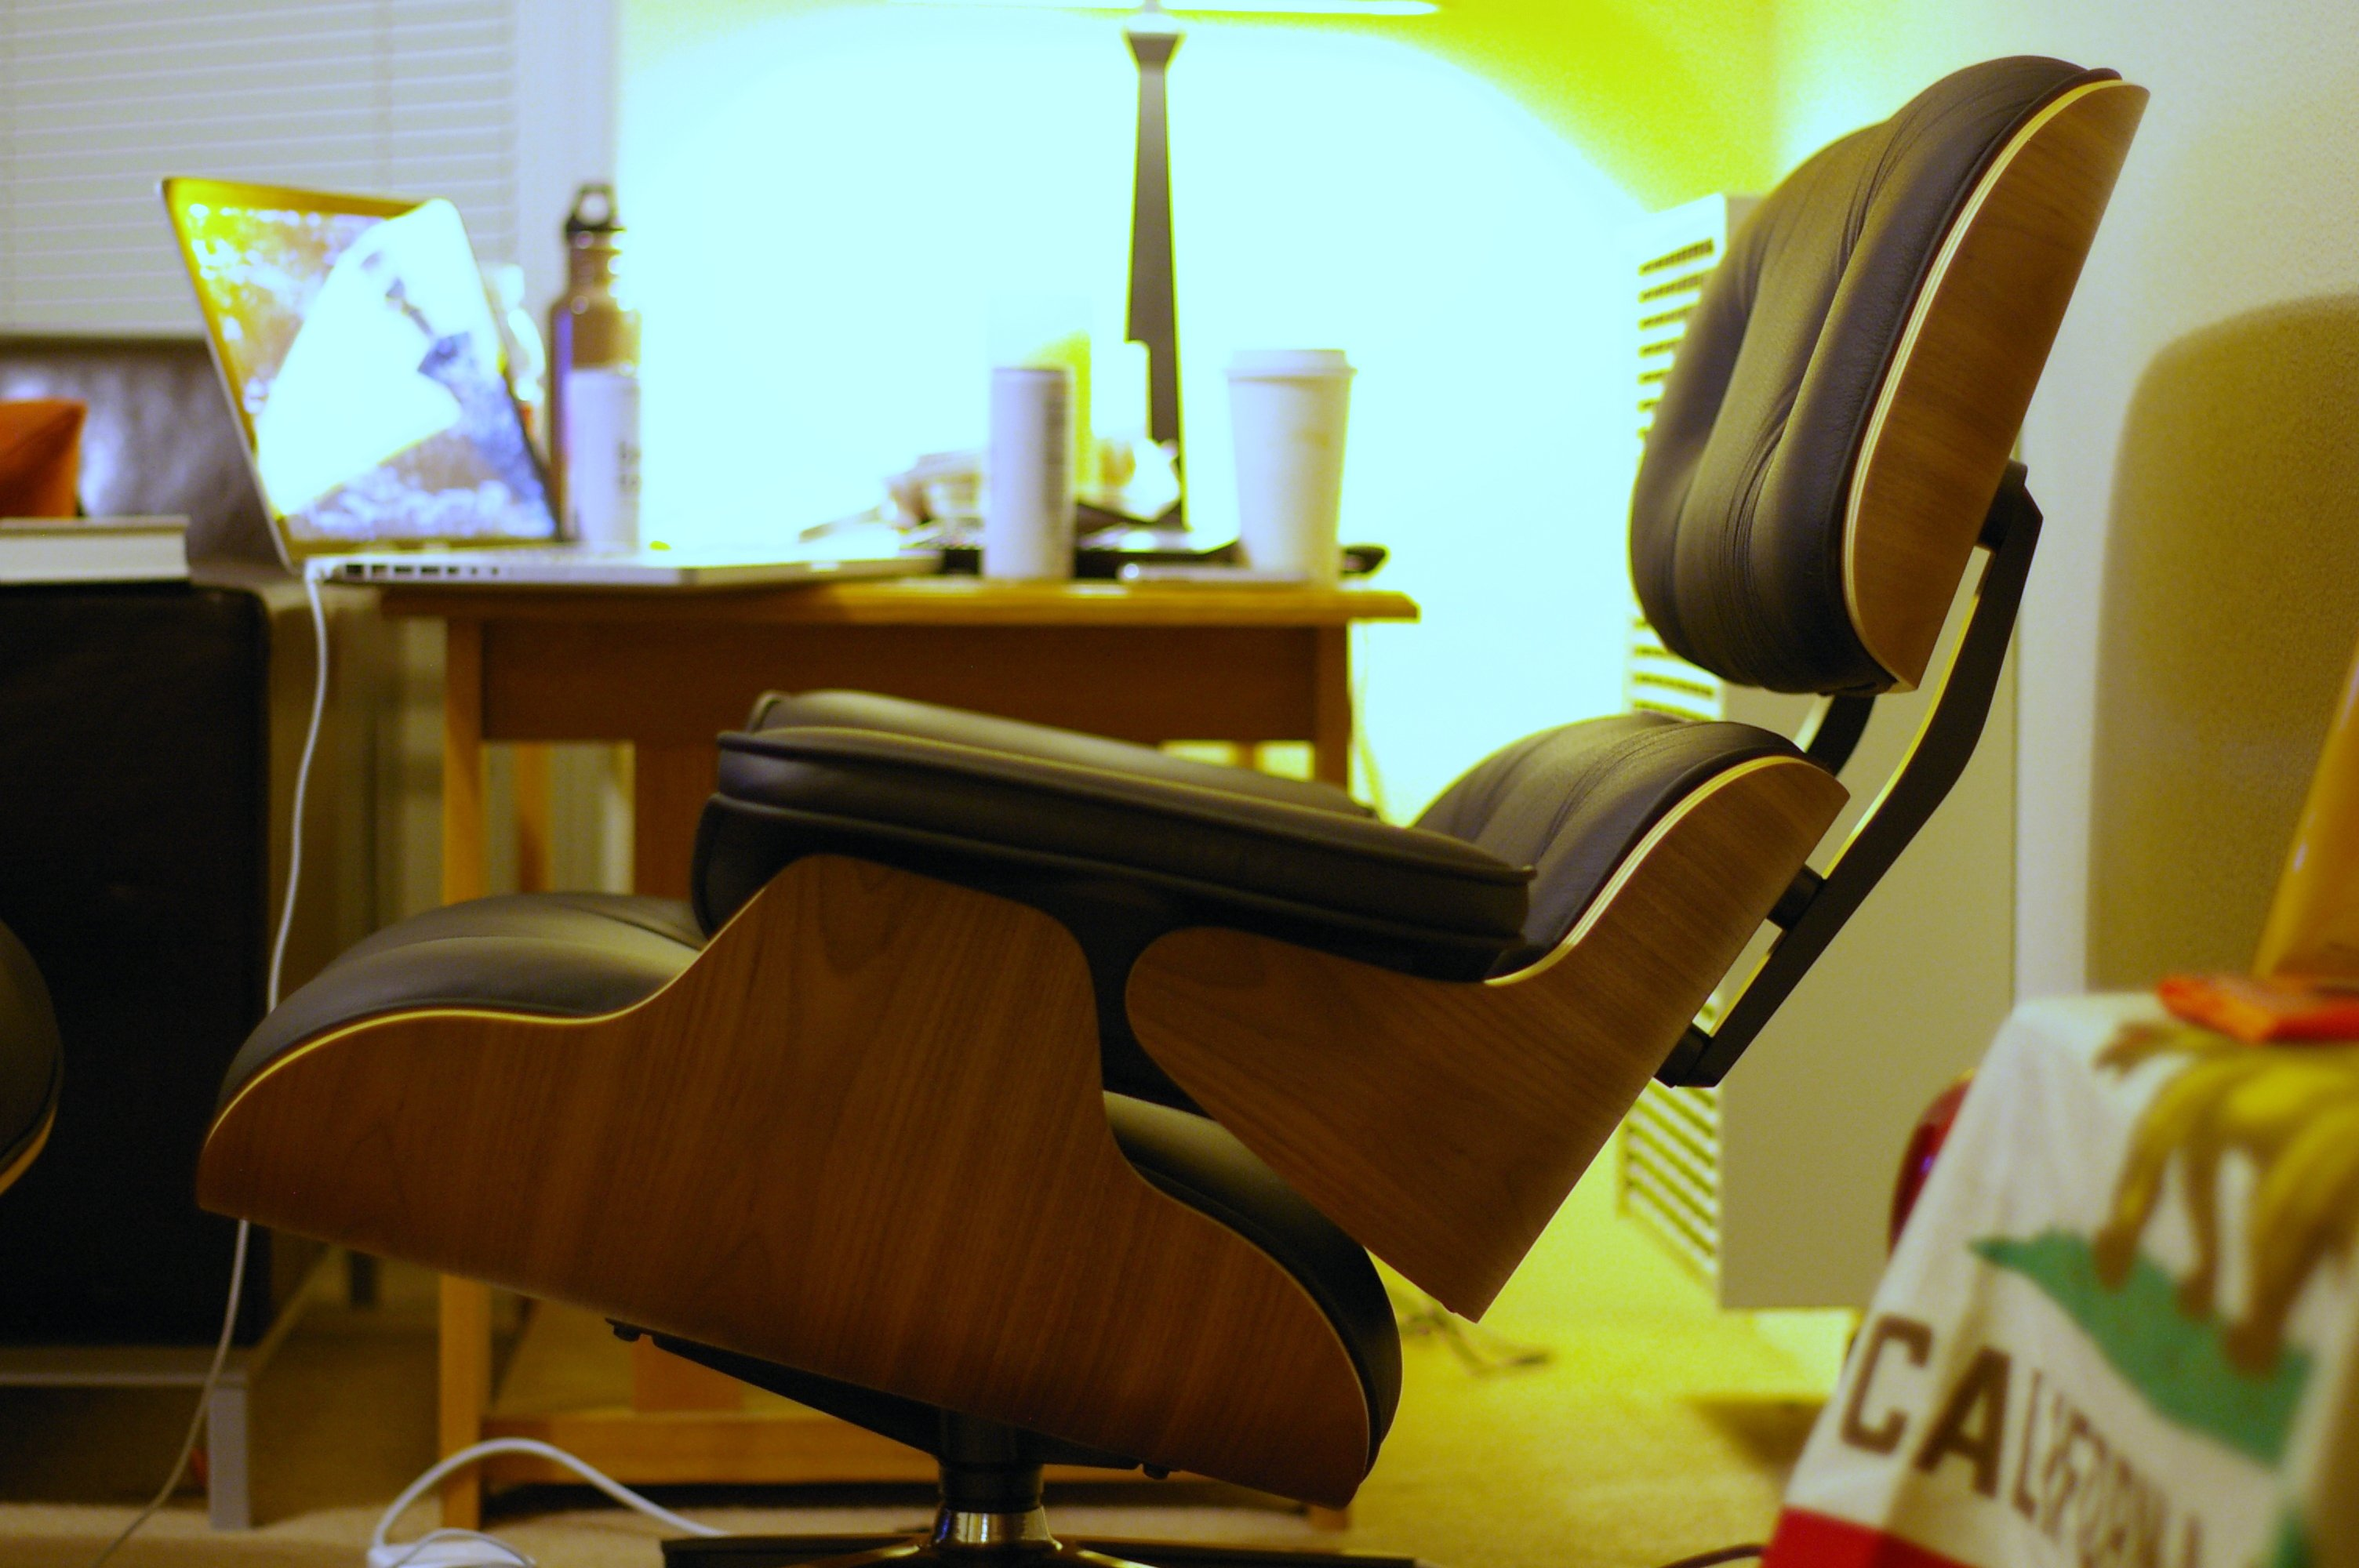 Vitra Eames Lounge Chair Dwg Lounge Chair Wikipedia